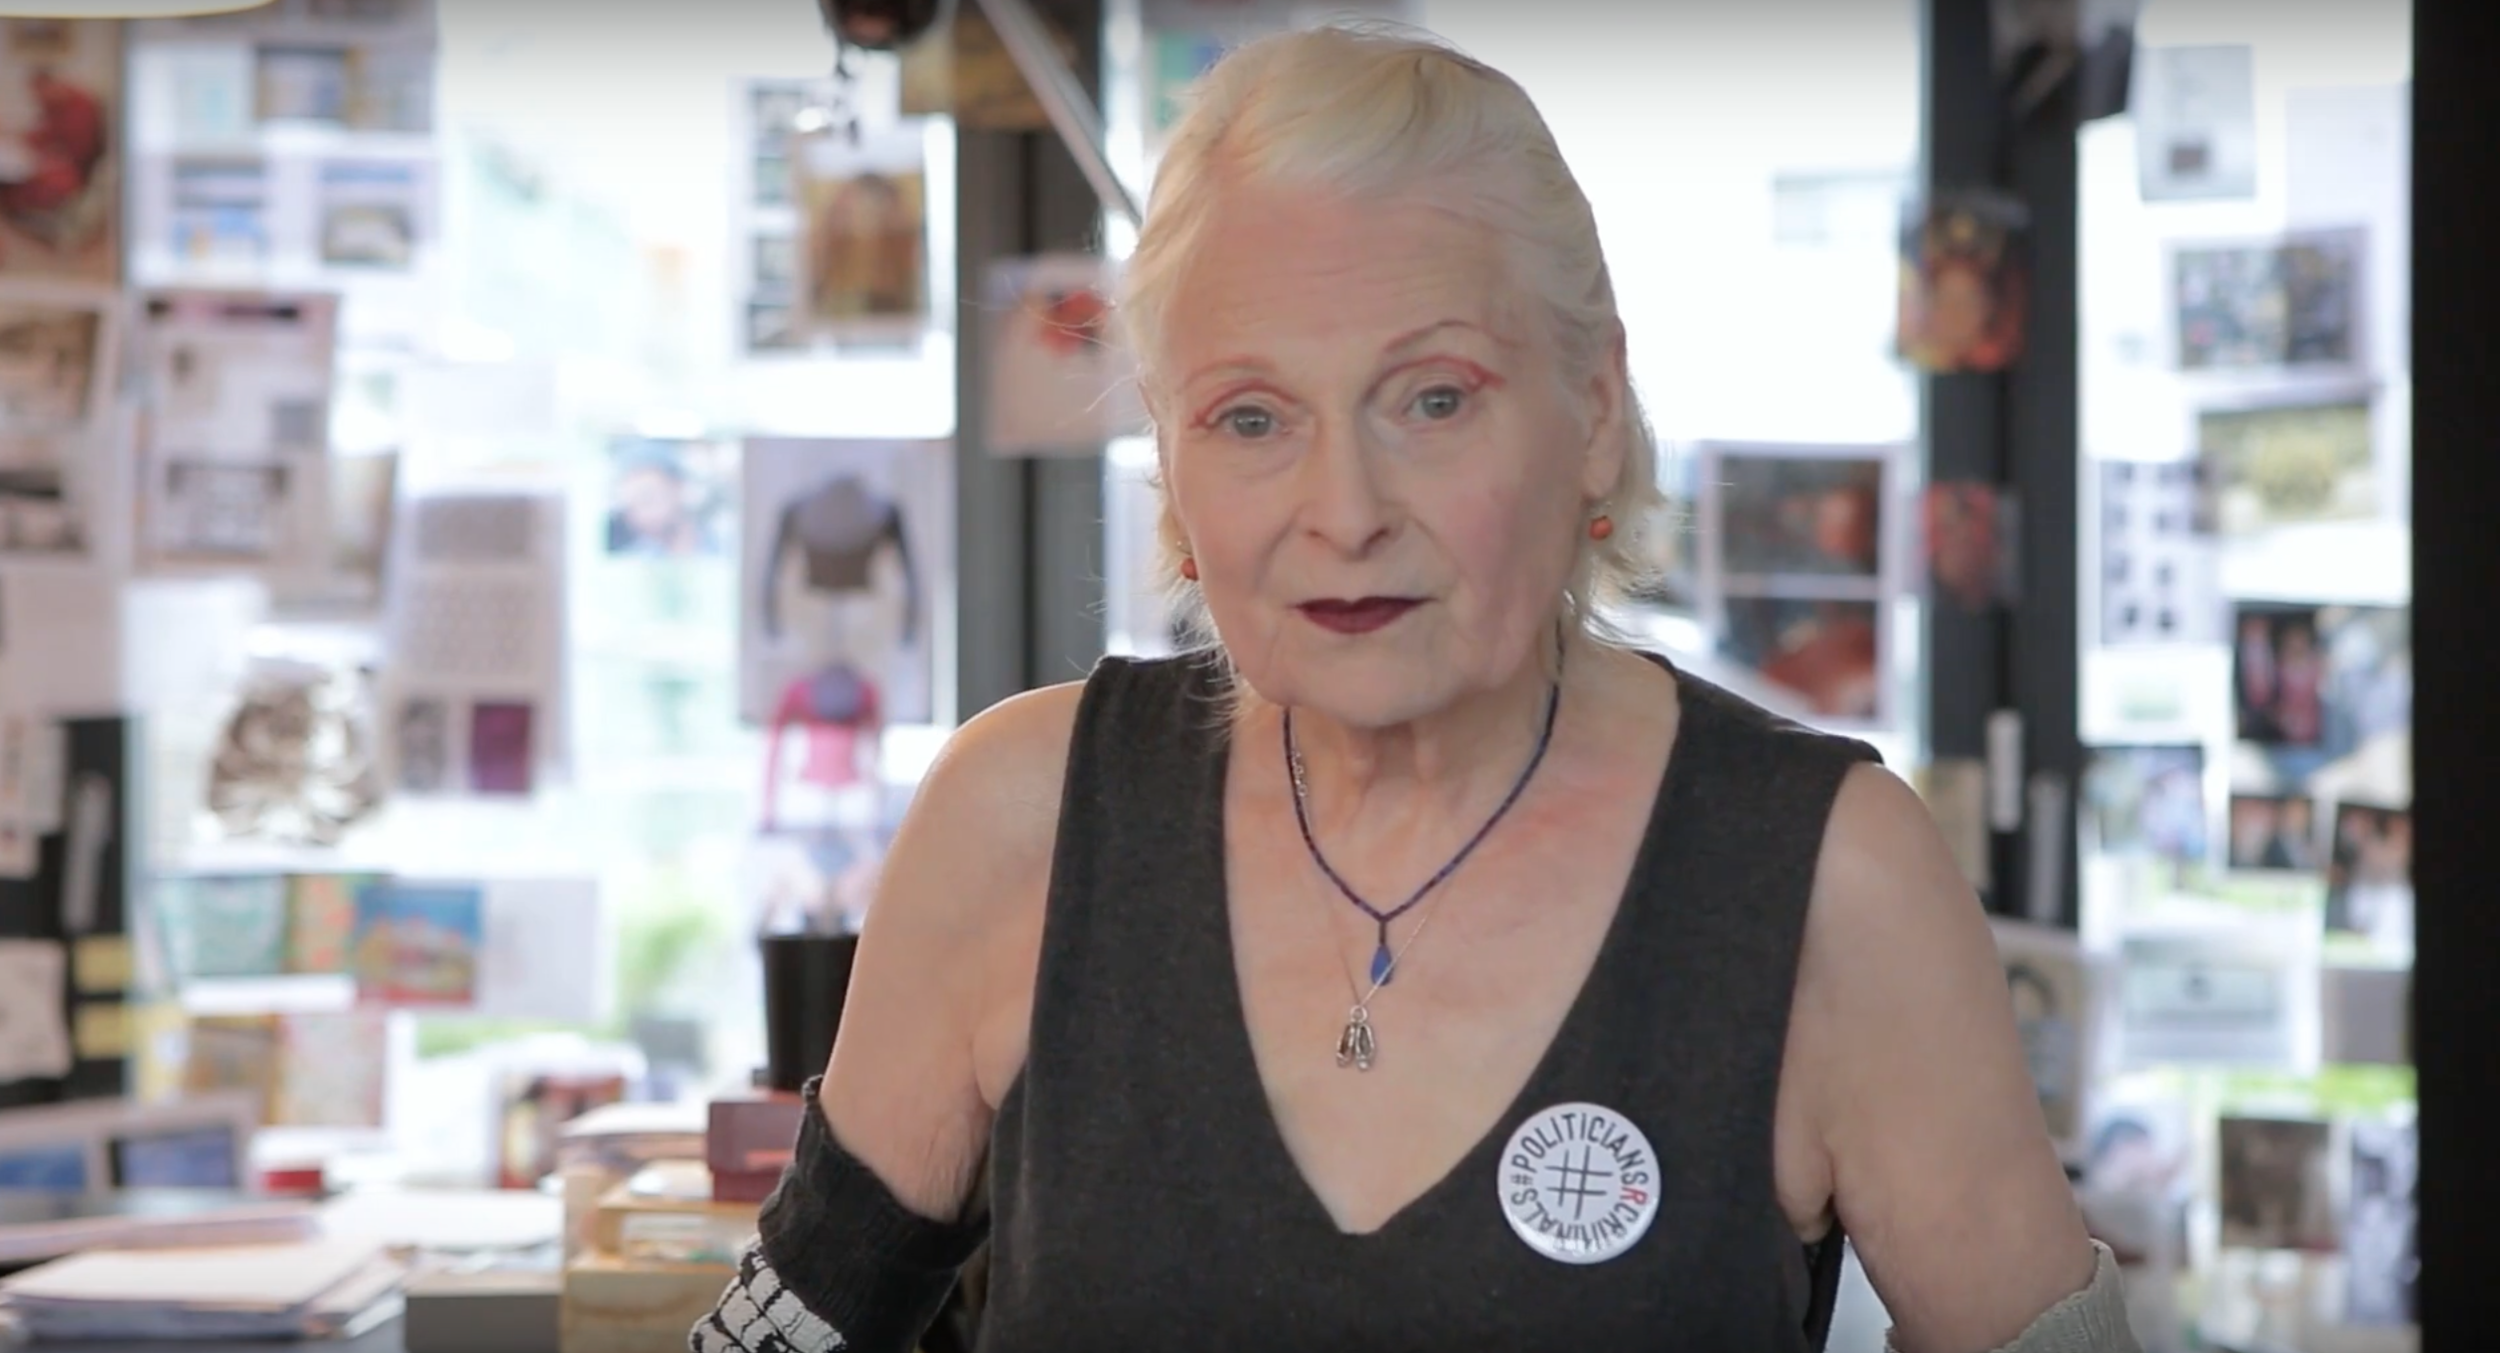 Vivienne Westwood supports Julian Assange.